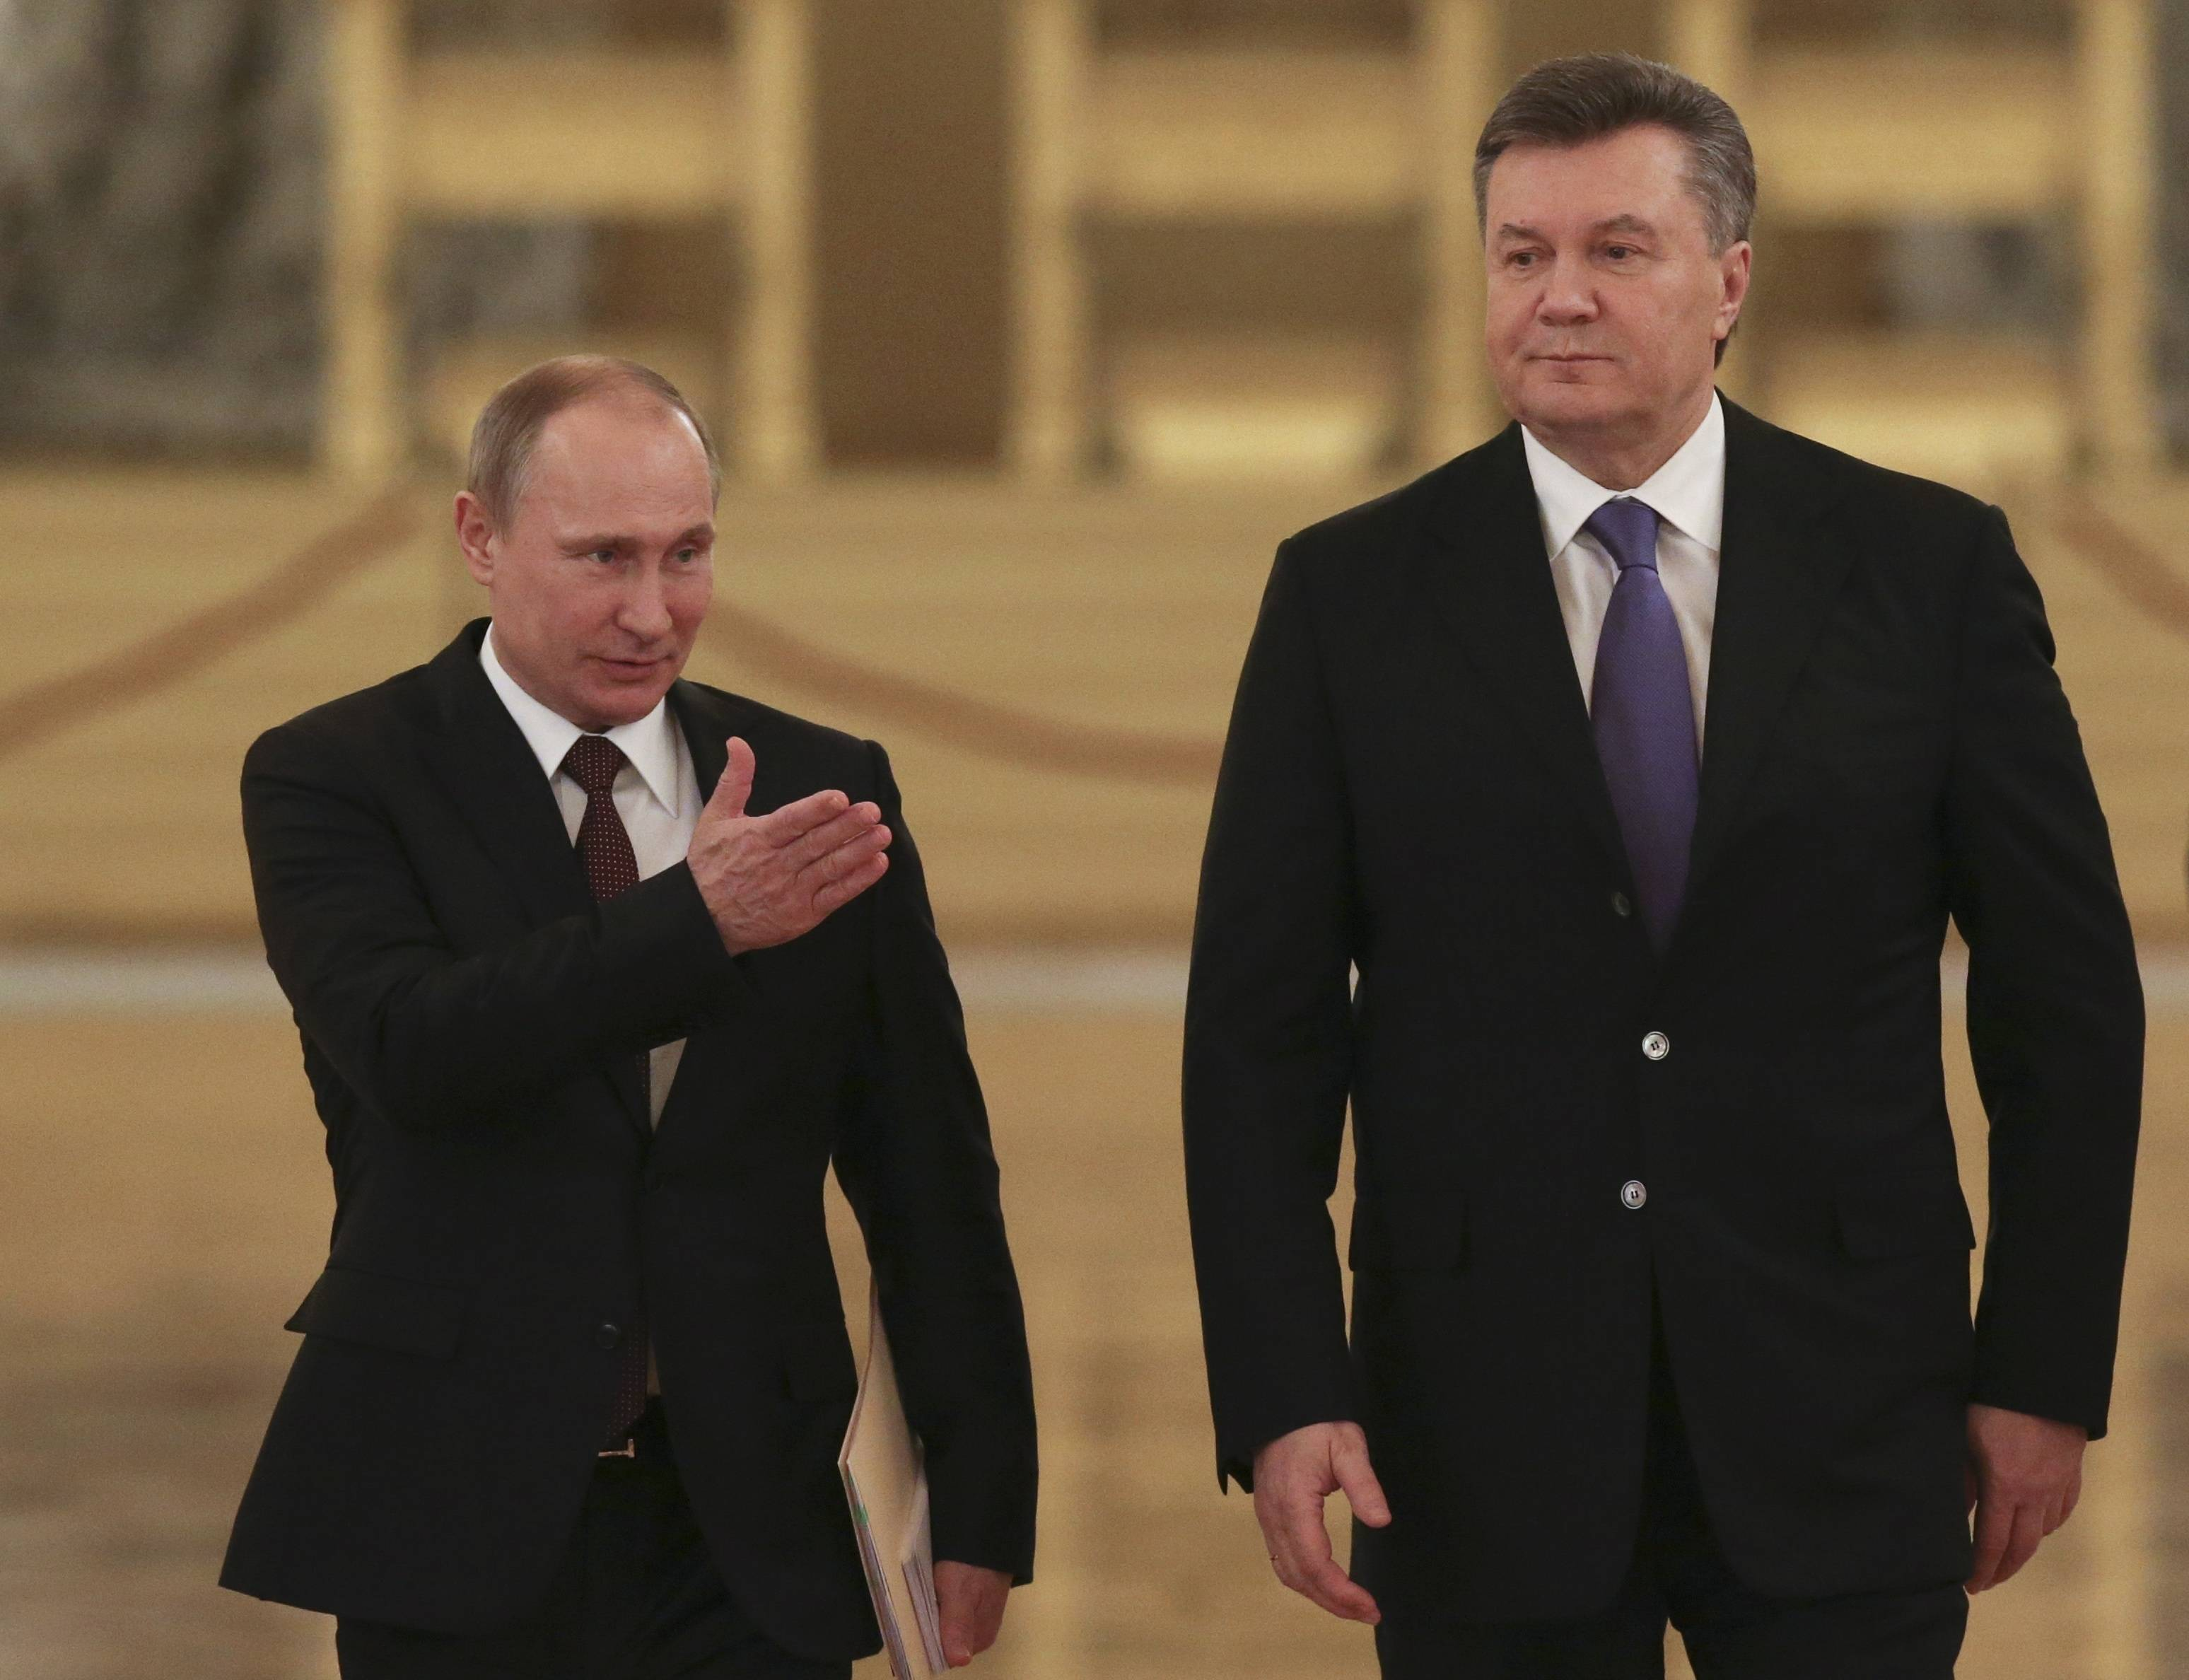 "Russian President Vladimir Putin, left, shows the way to his Ukrainian counterpart Viktor Yanukovych during a meeting in the Kremlin in Moscow, Russia. Moscow on Wednesday granted Ukrainian President Viktor Yanukovych protection ""on the territory of Russia,"" shortly after the fugitive leader sought help from the Kremlin, according to an official quoted by Russian news agencies."